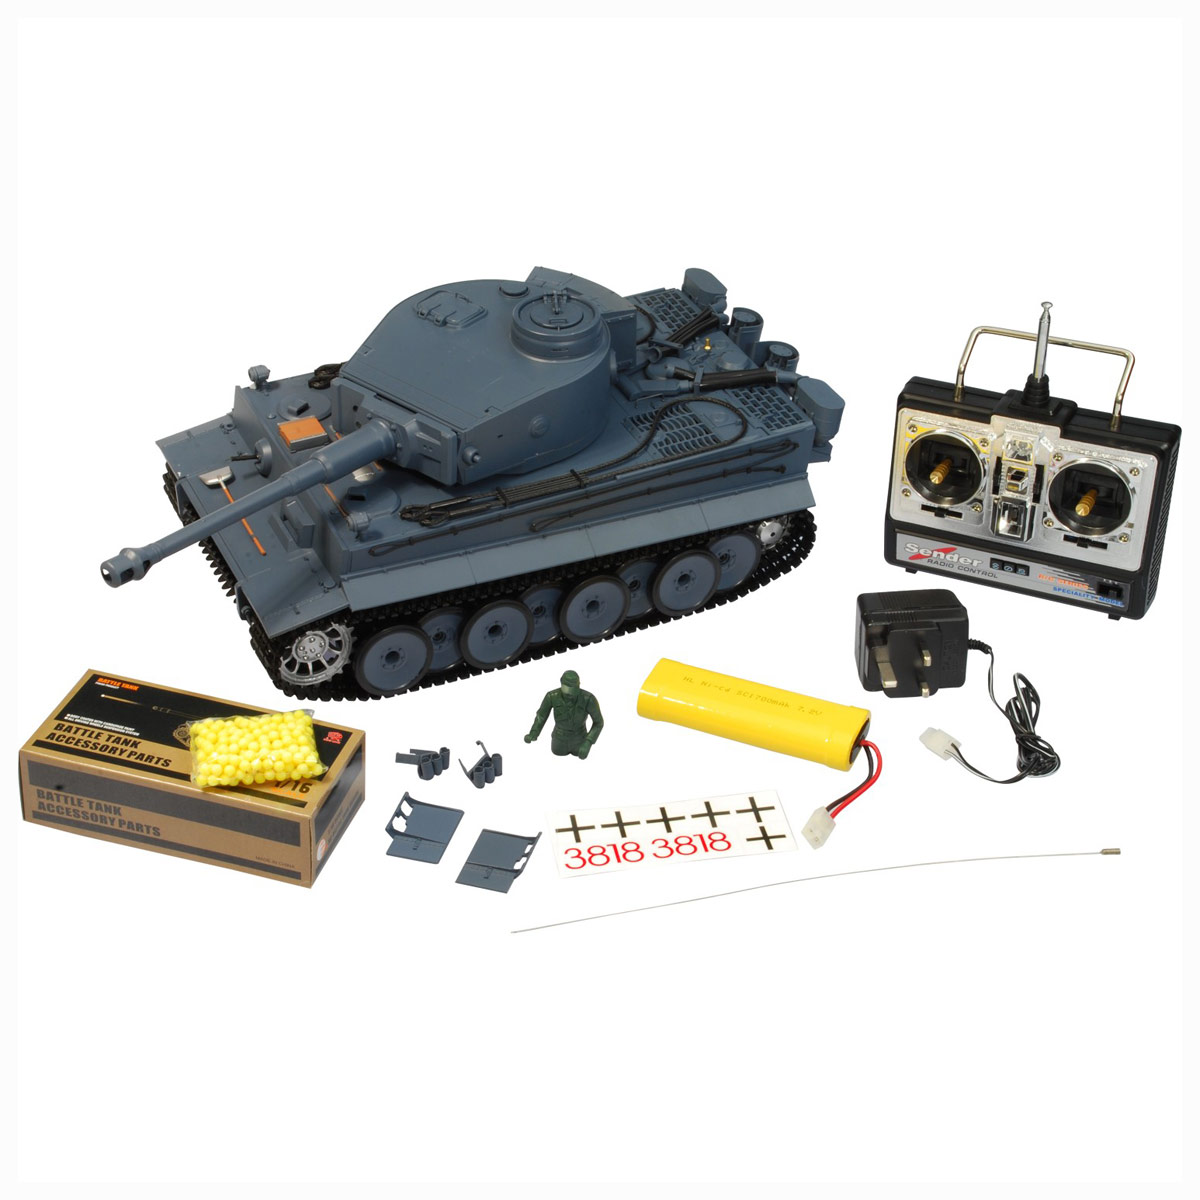 rc panzer modell r c deutscher tiger modellbau 1 16. Black Bedroom Furniture Sets. Home Design Ideas